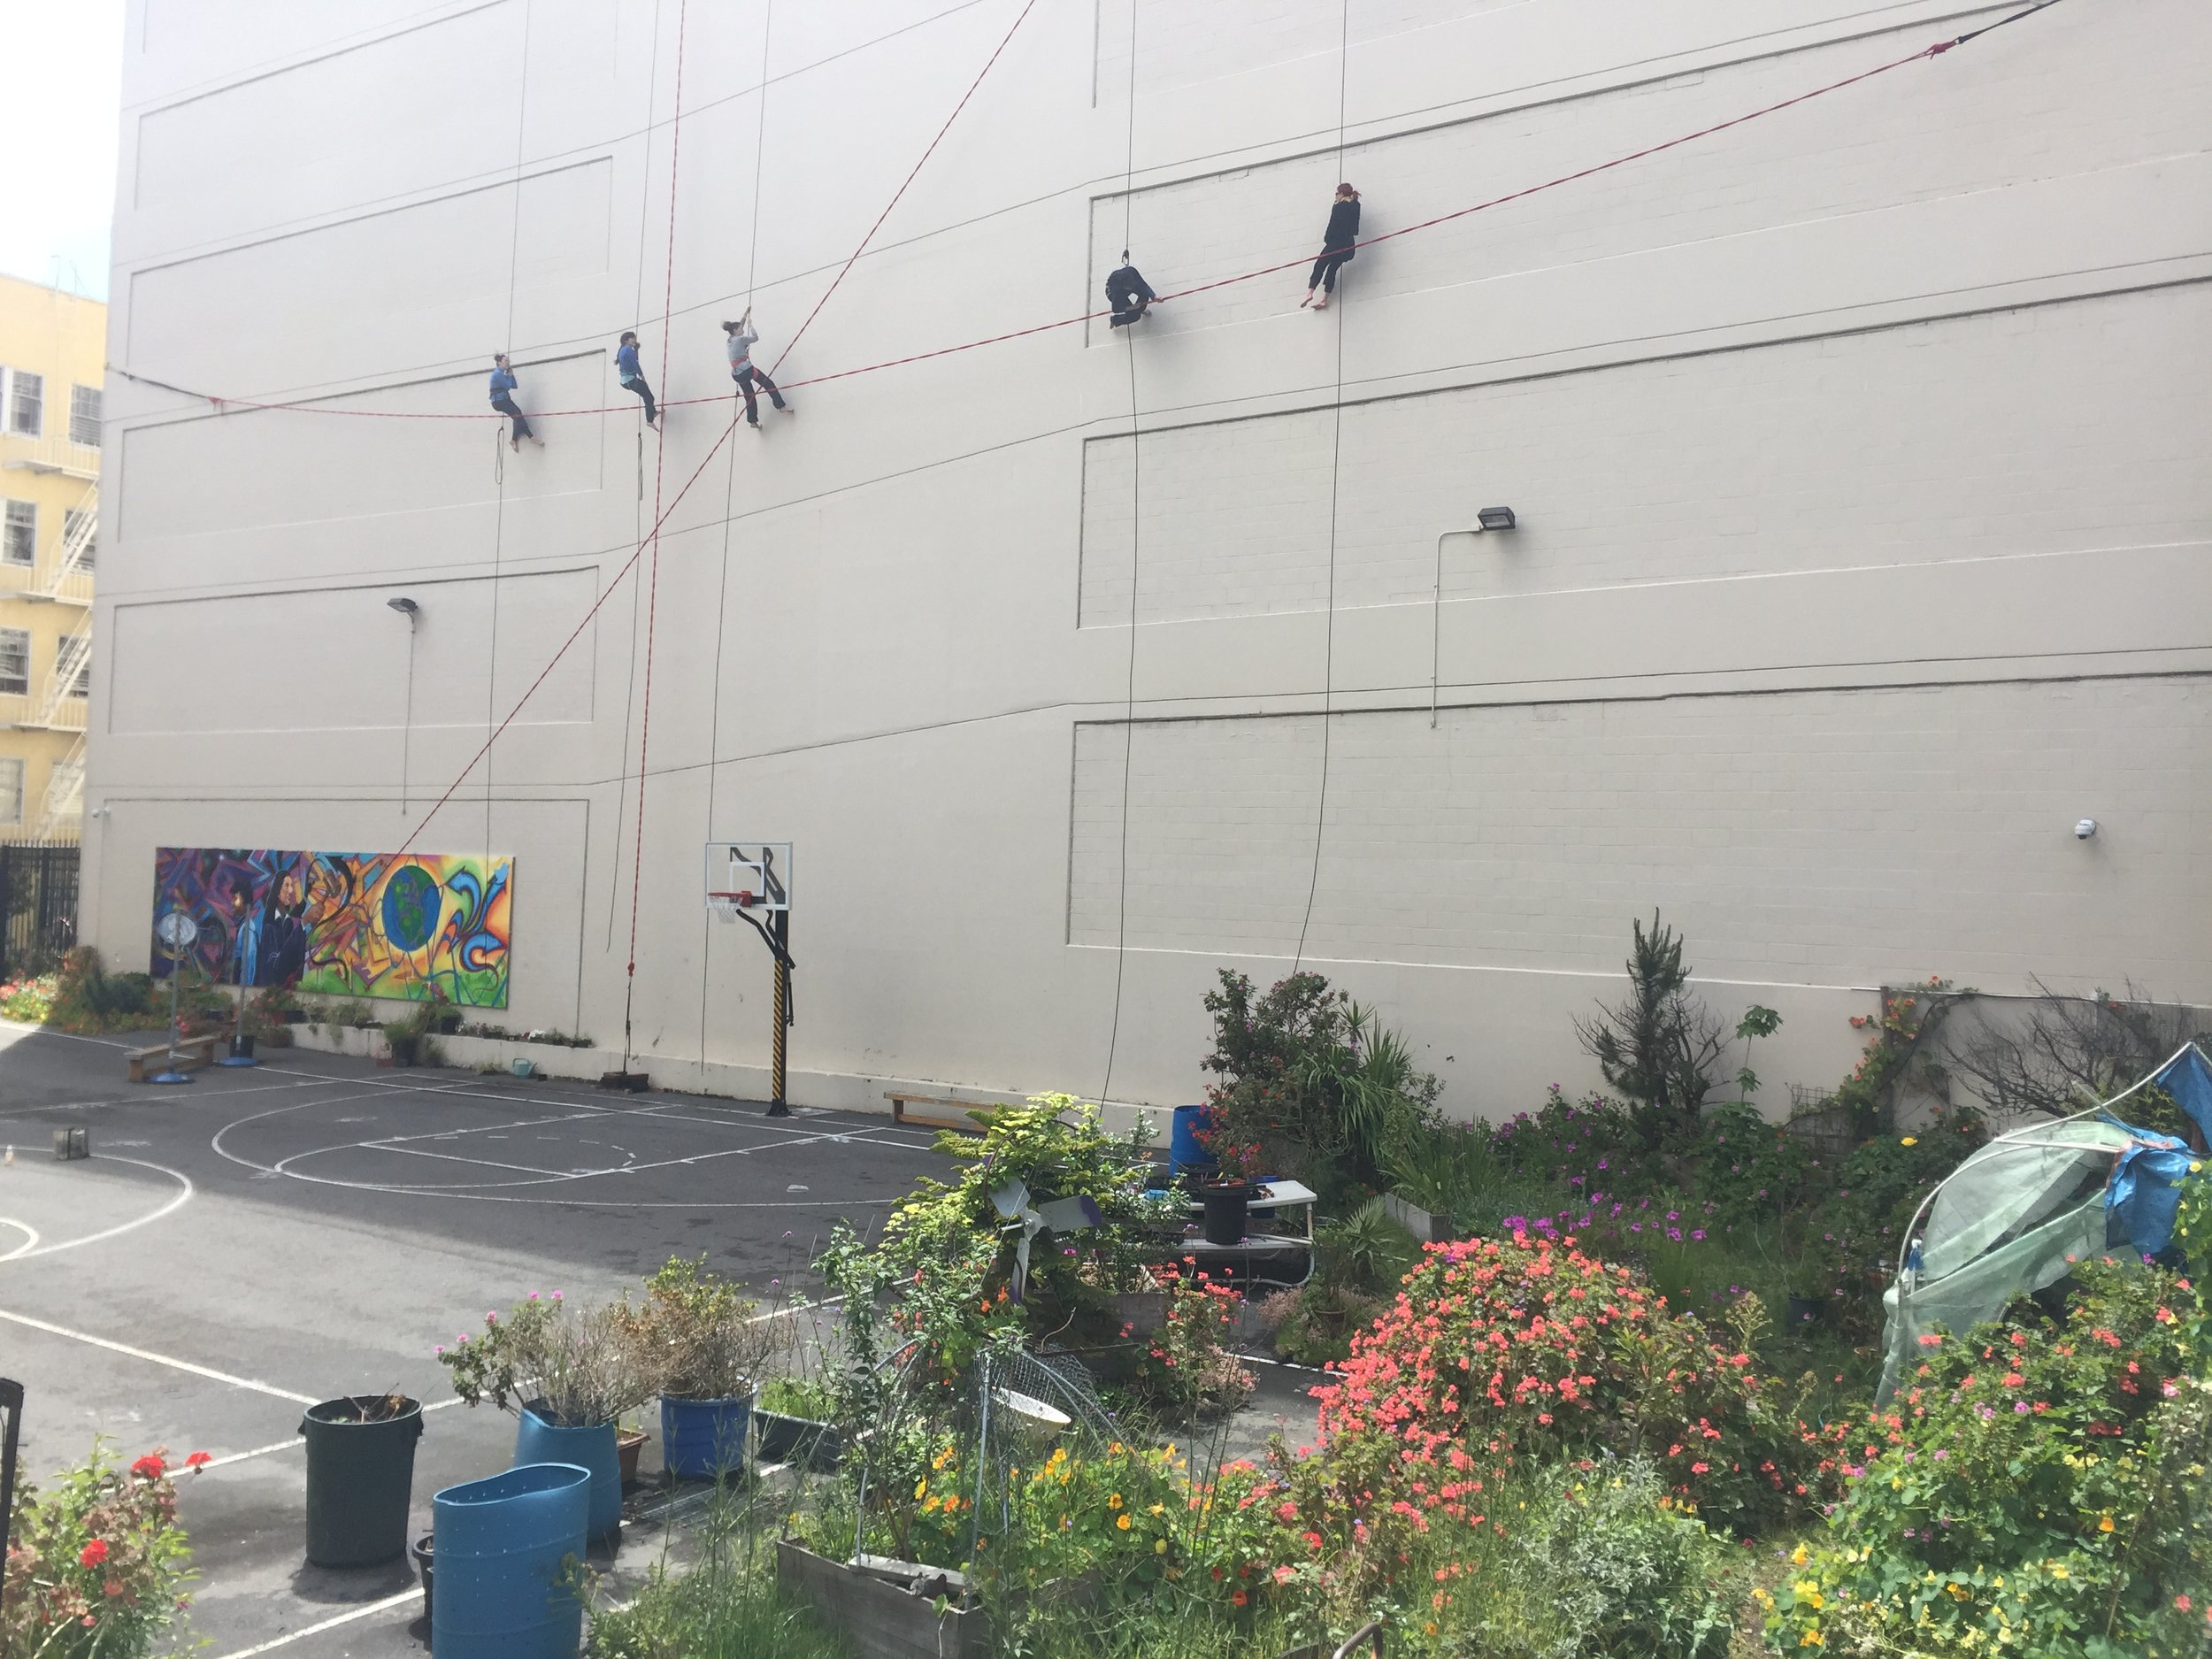 Aerial dancers rehearse above the Demonstration Gardens at UC Hastings in the Tenderloin, San Francisco. Photo by Tenderloin CBD.